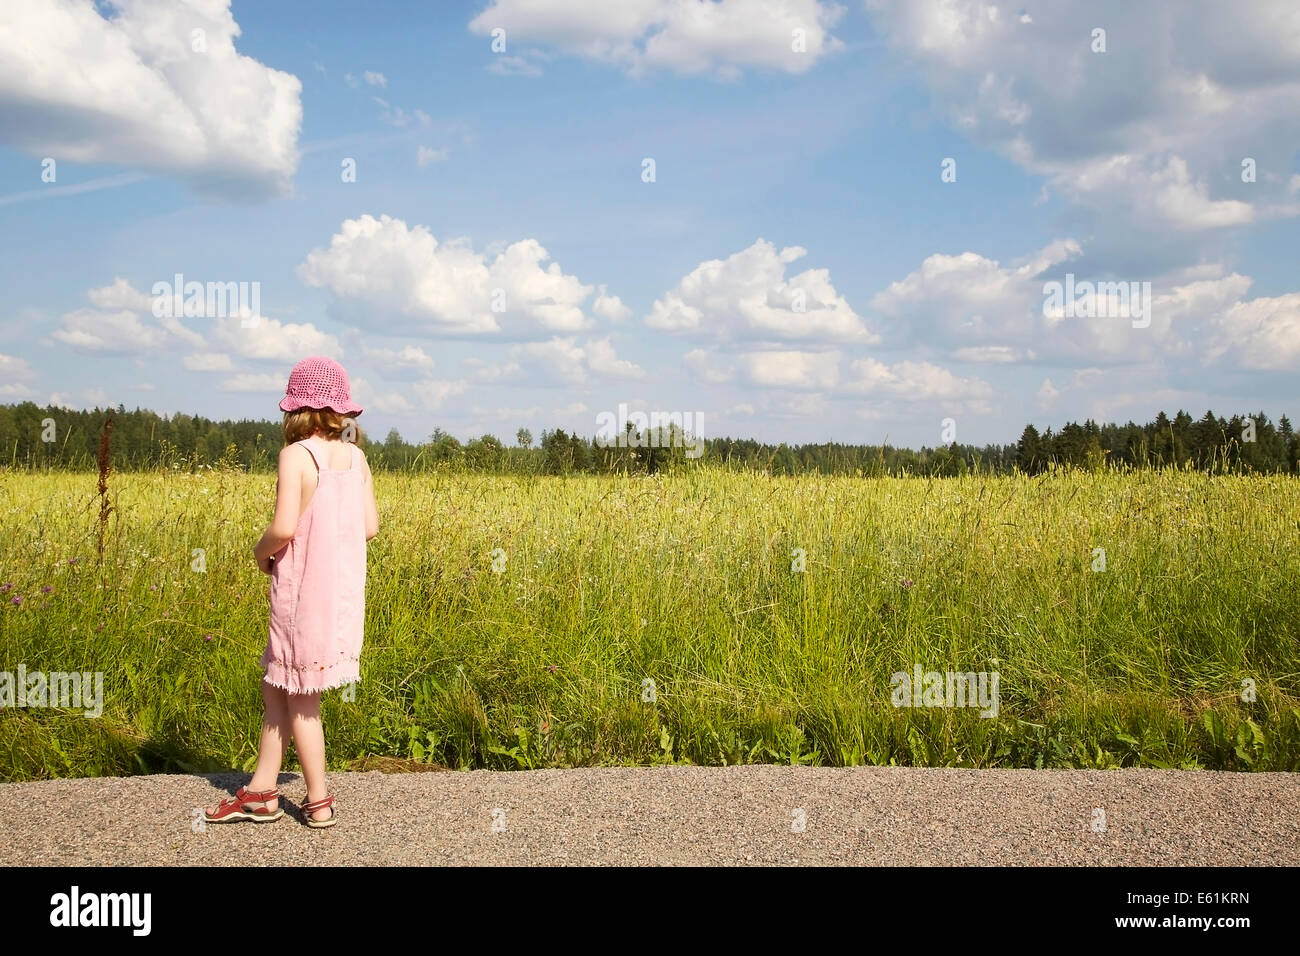 Girl standing at the edge of a cornfield looking at the field - Stock Image